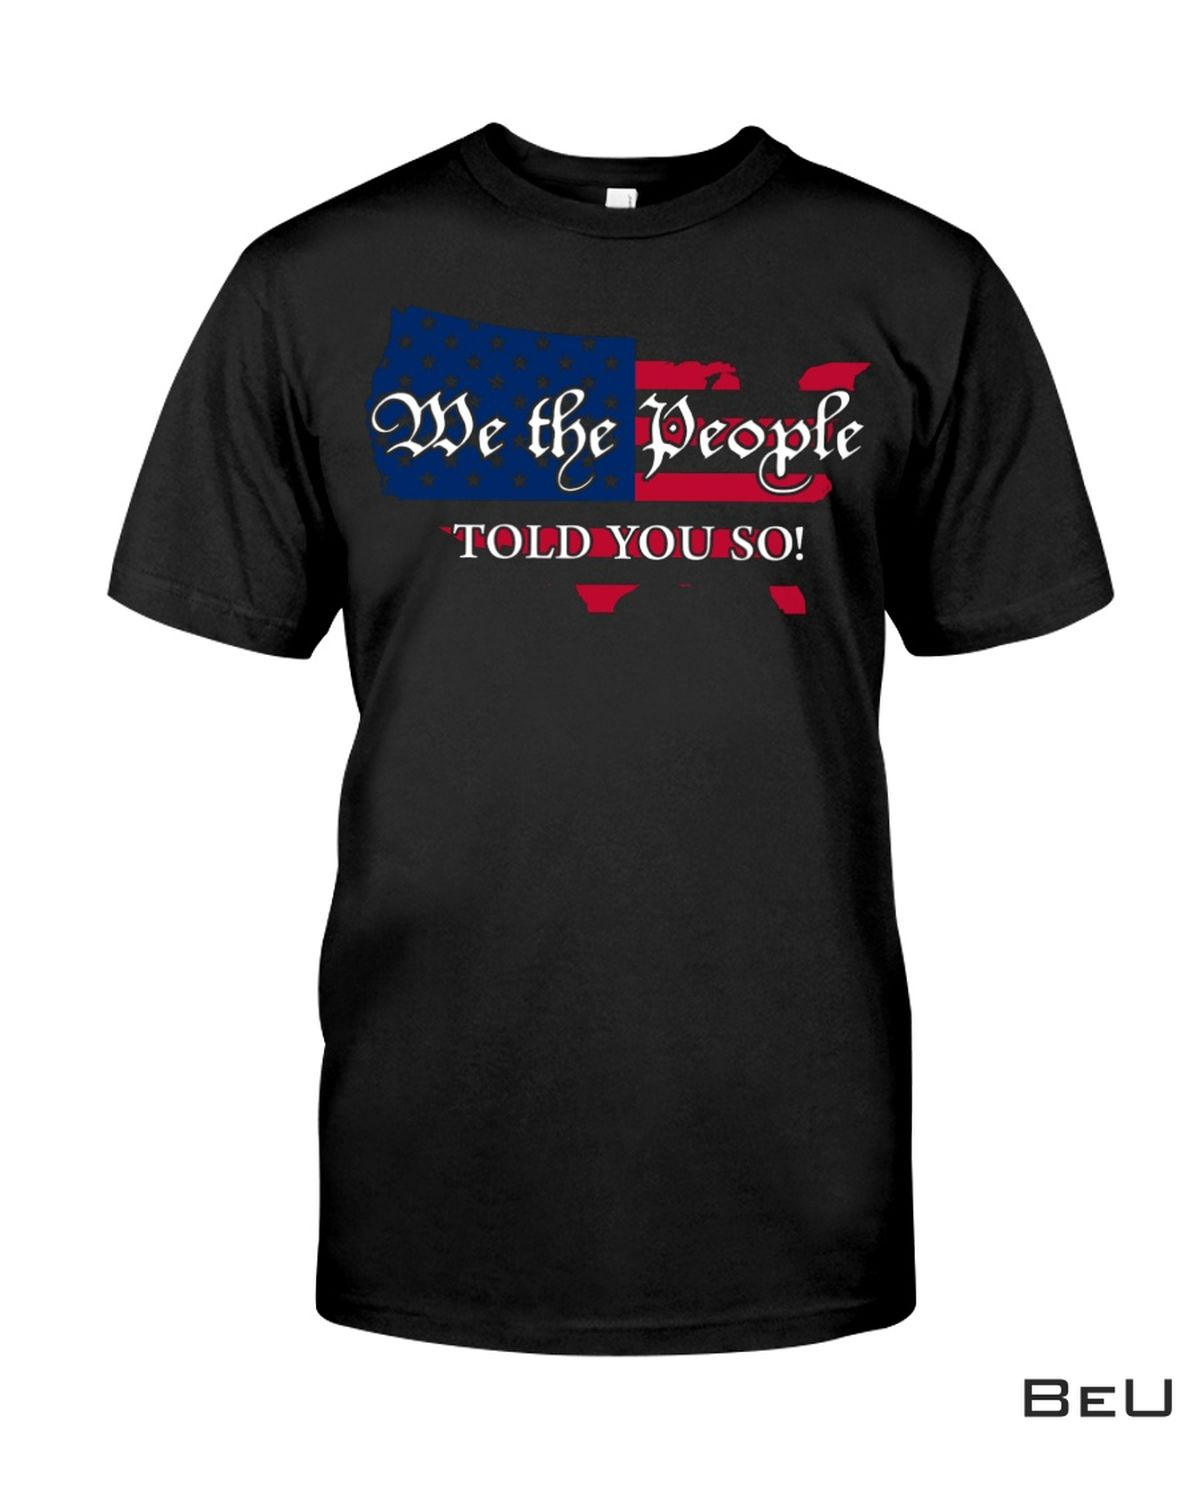 We The People Told You So Shirt, hoodie